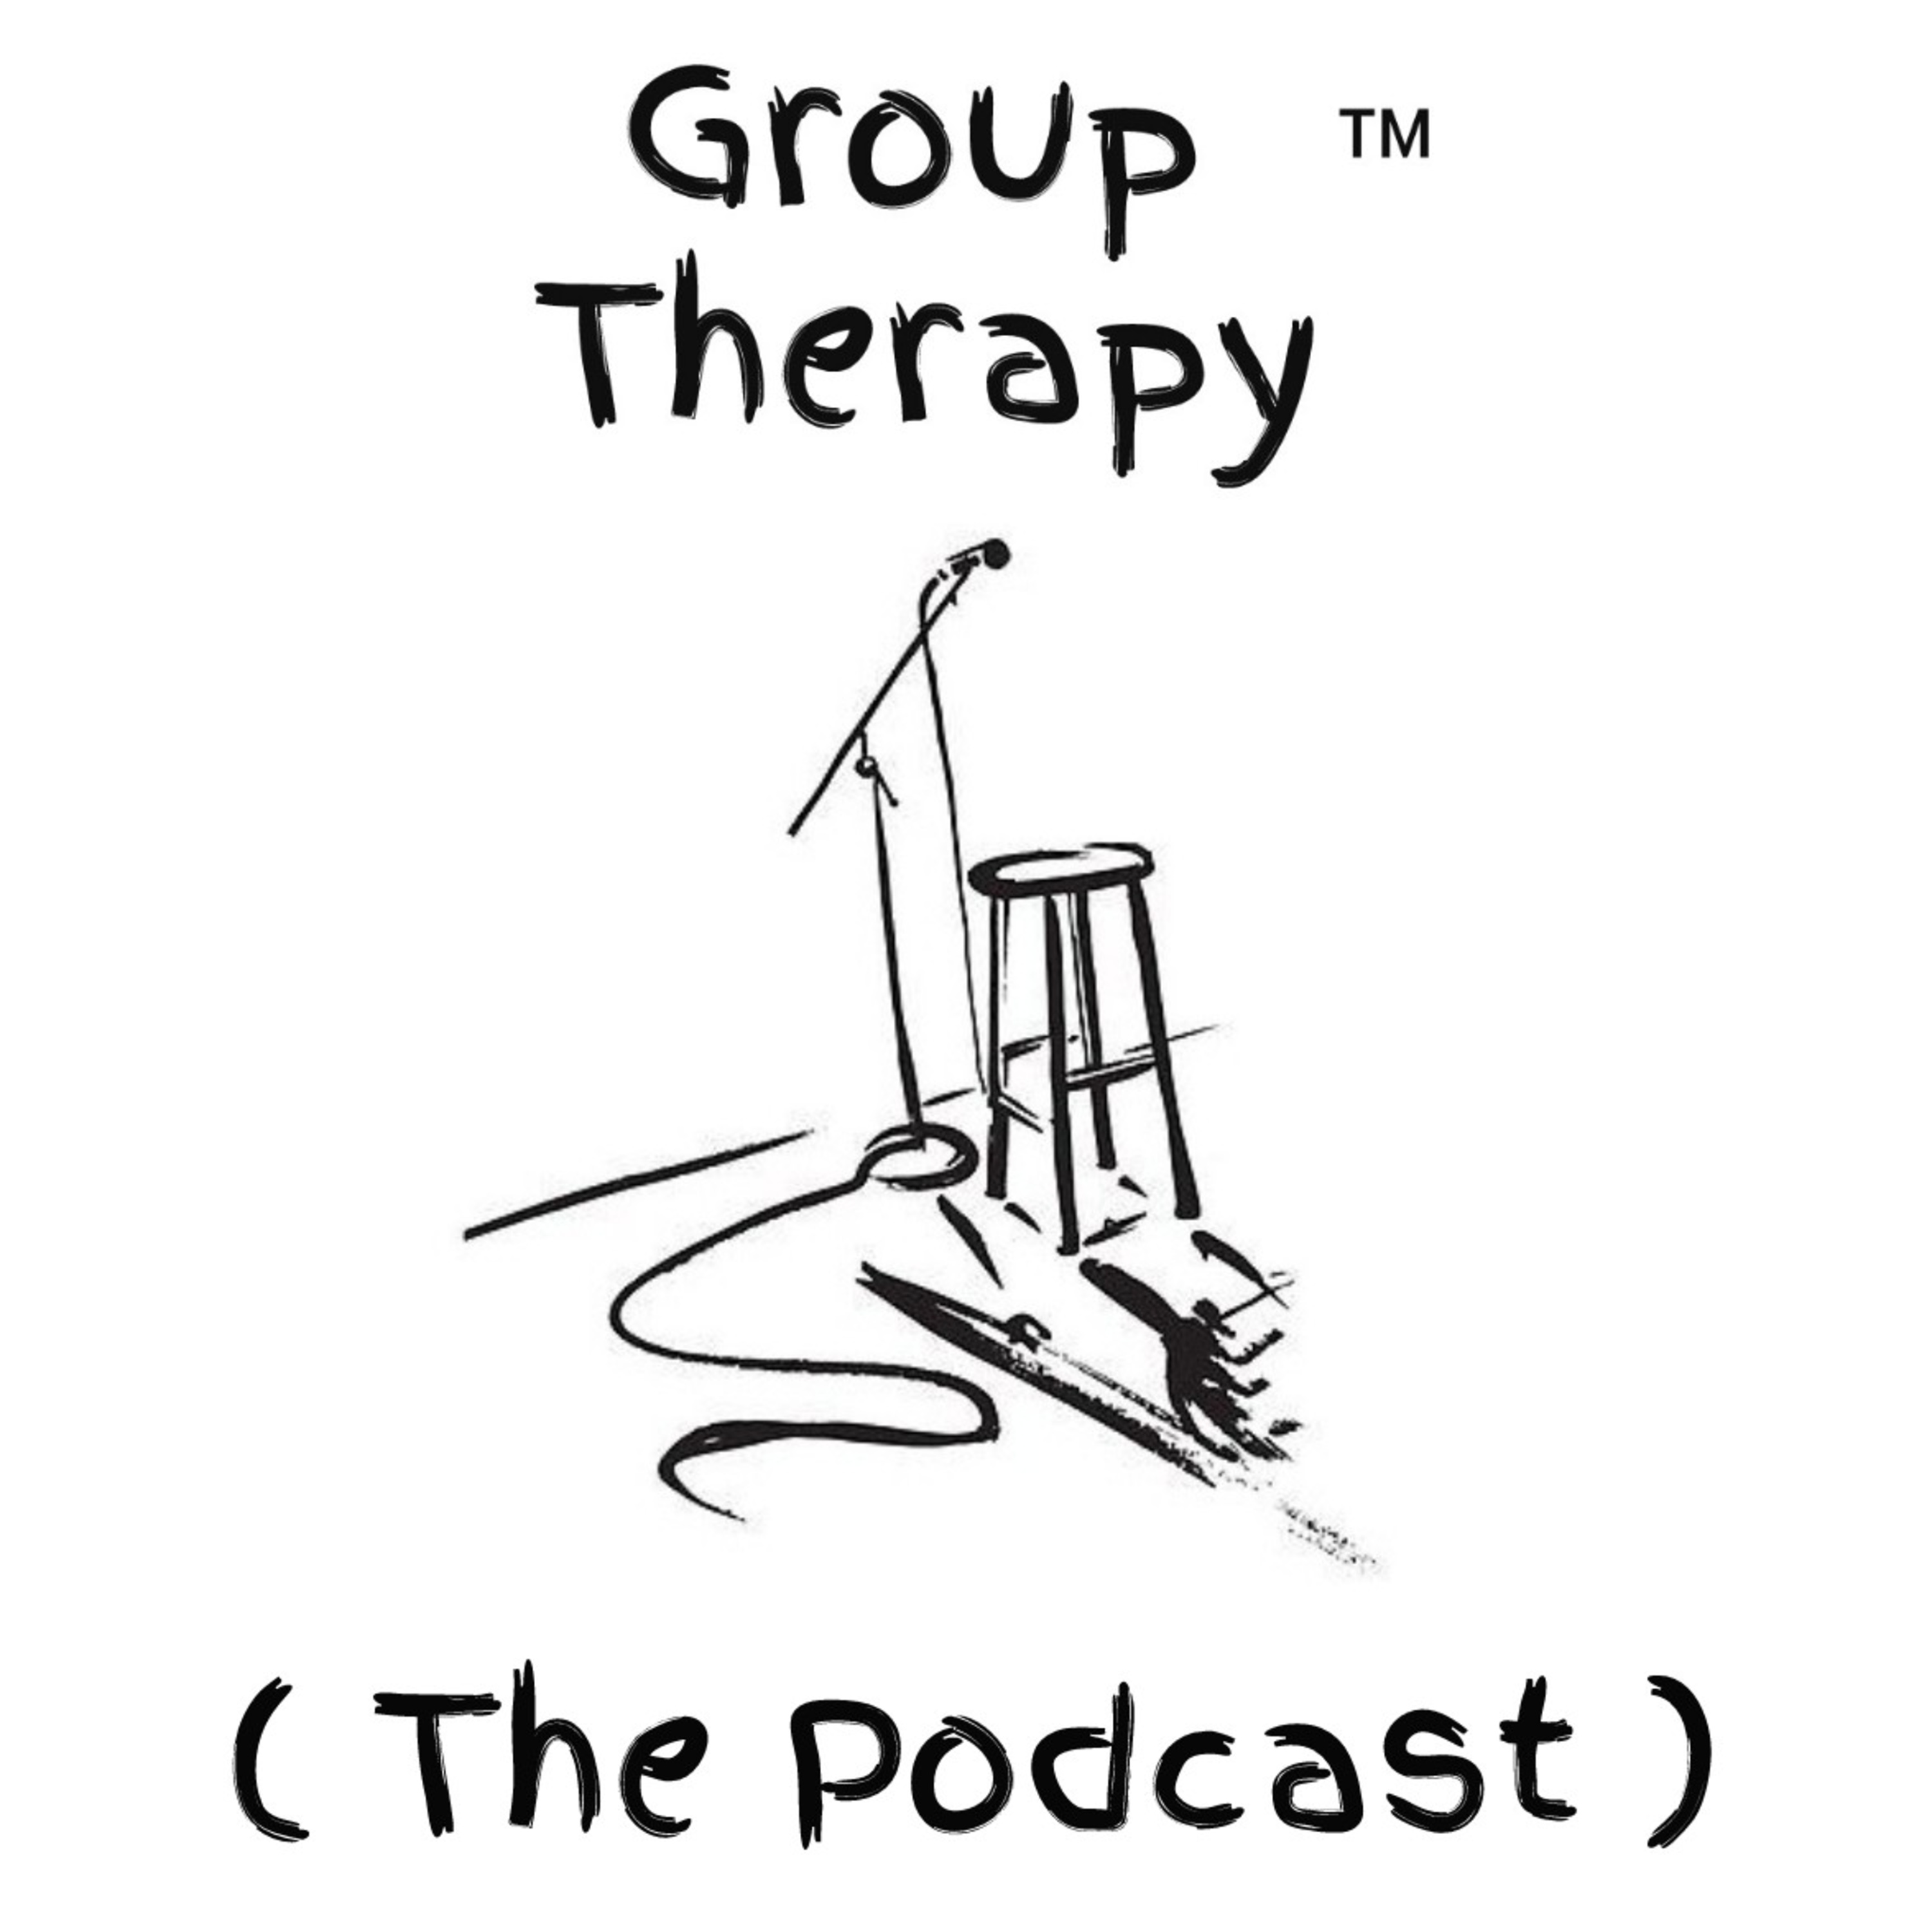 Group Therapy - The Podcast